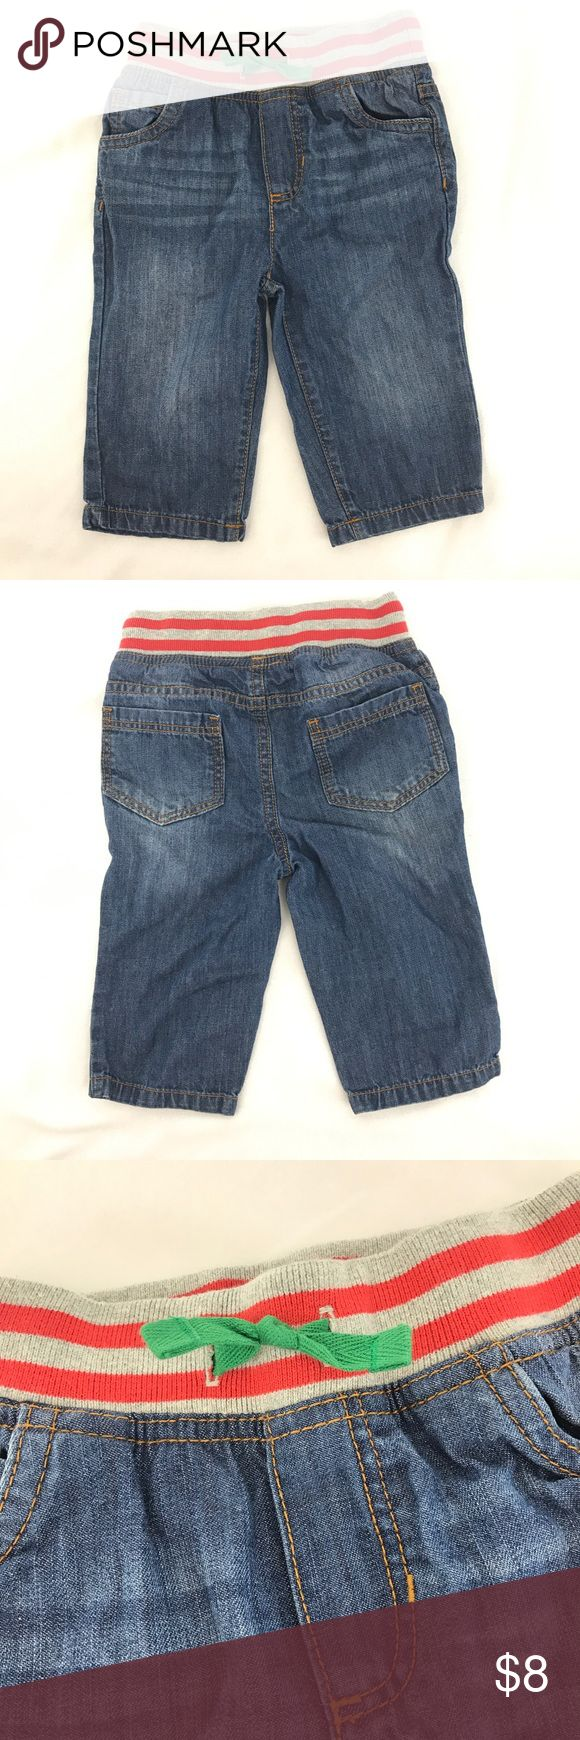 Baby Boden Boys 12-18 Mo Pull on Pants Jeans Baby Boden Boy's pull on pants/lightweight jeans * 12-18 months * 100% cotton * Gently used with no flaws found Boden Bottoms Jeans